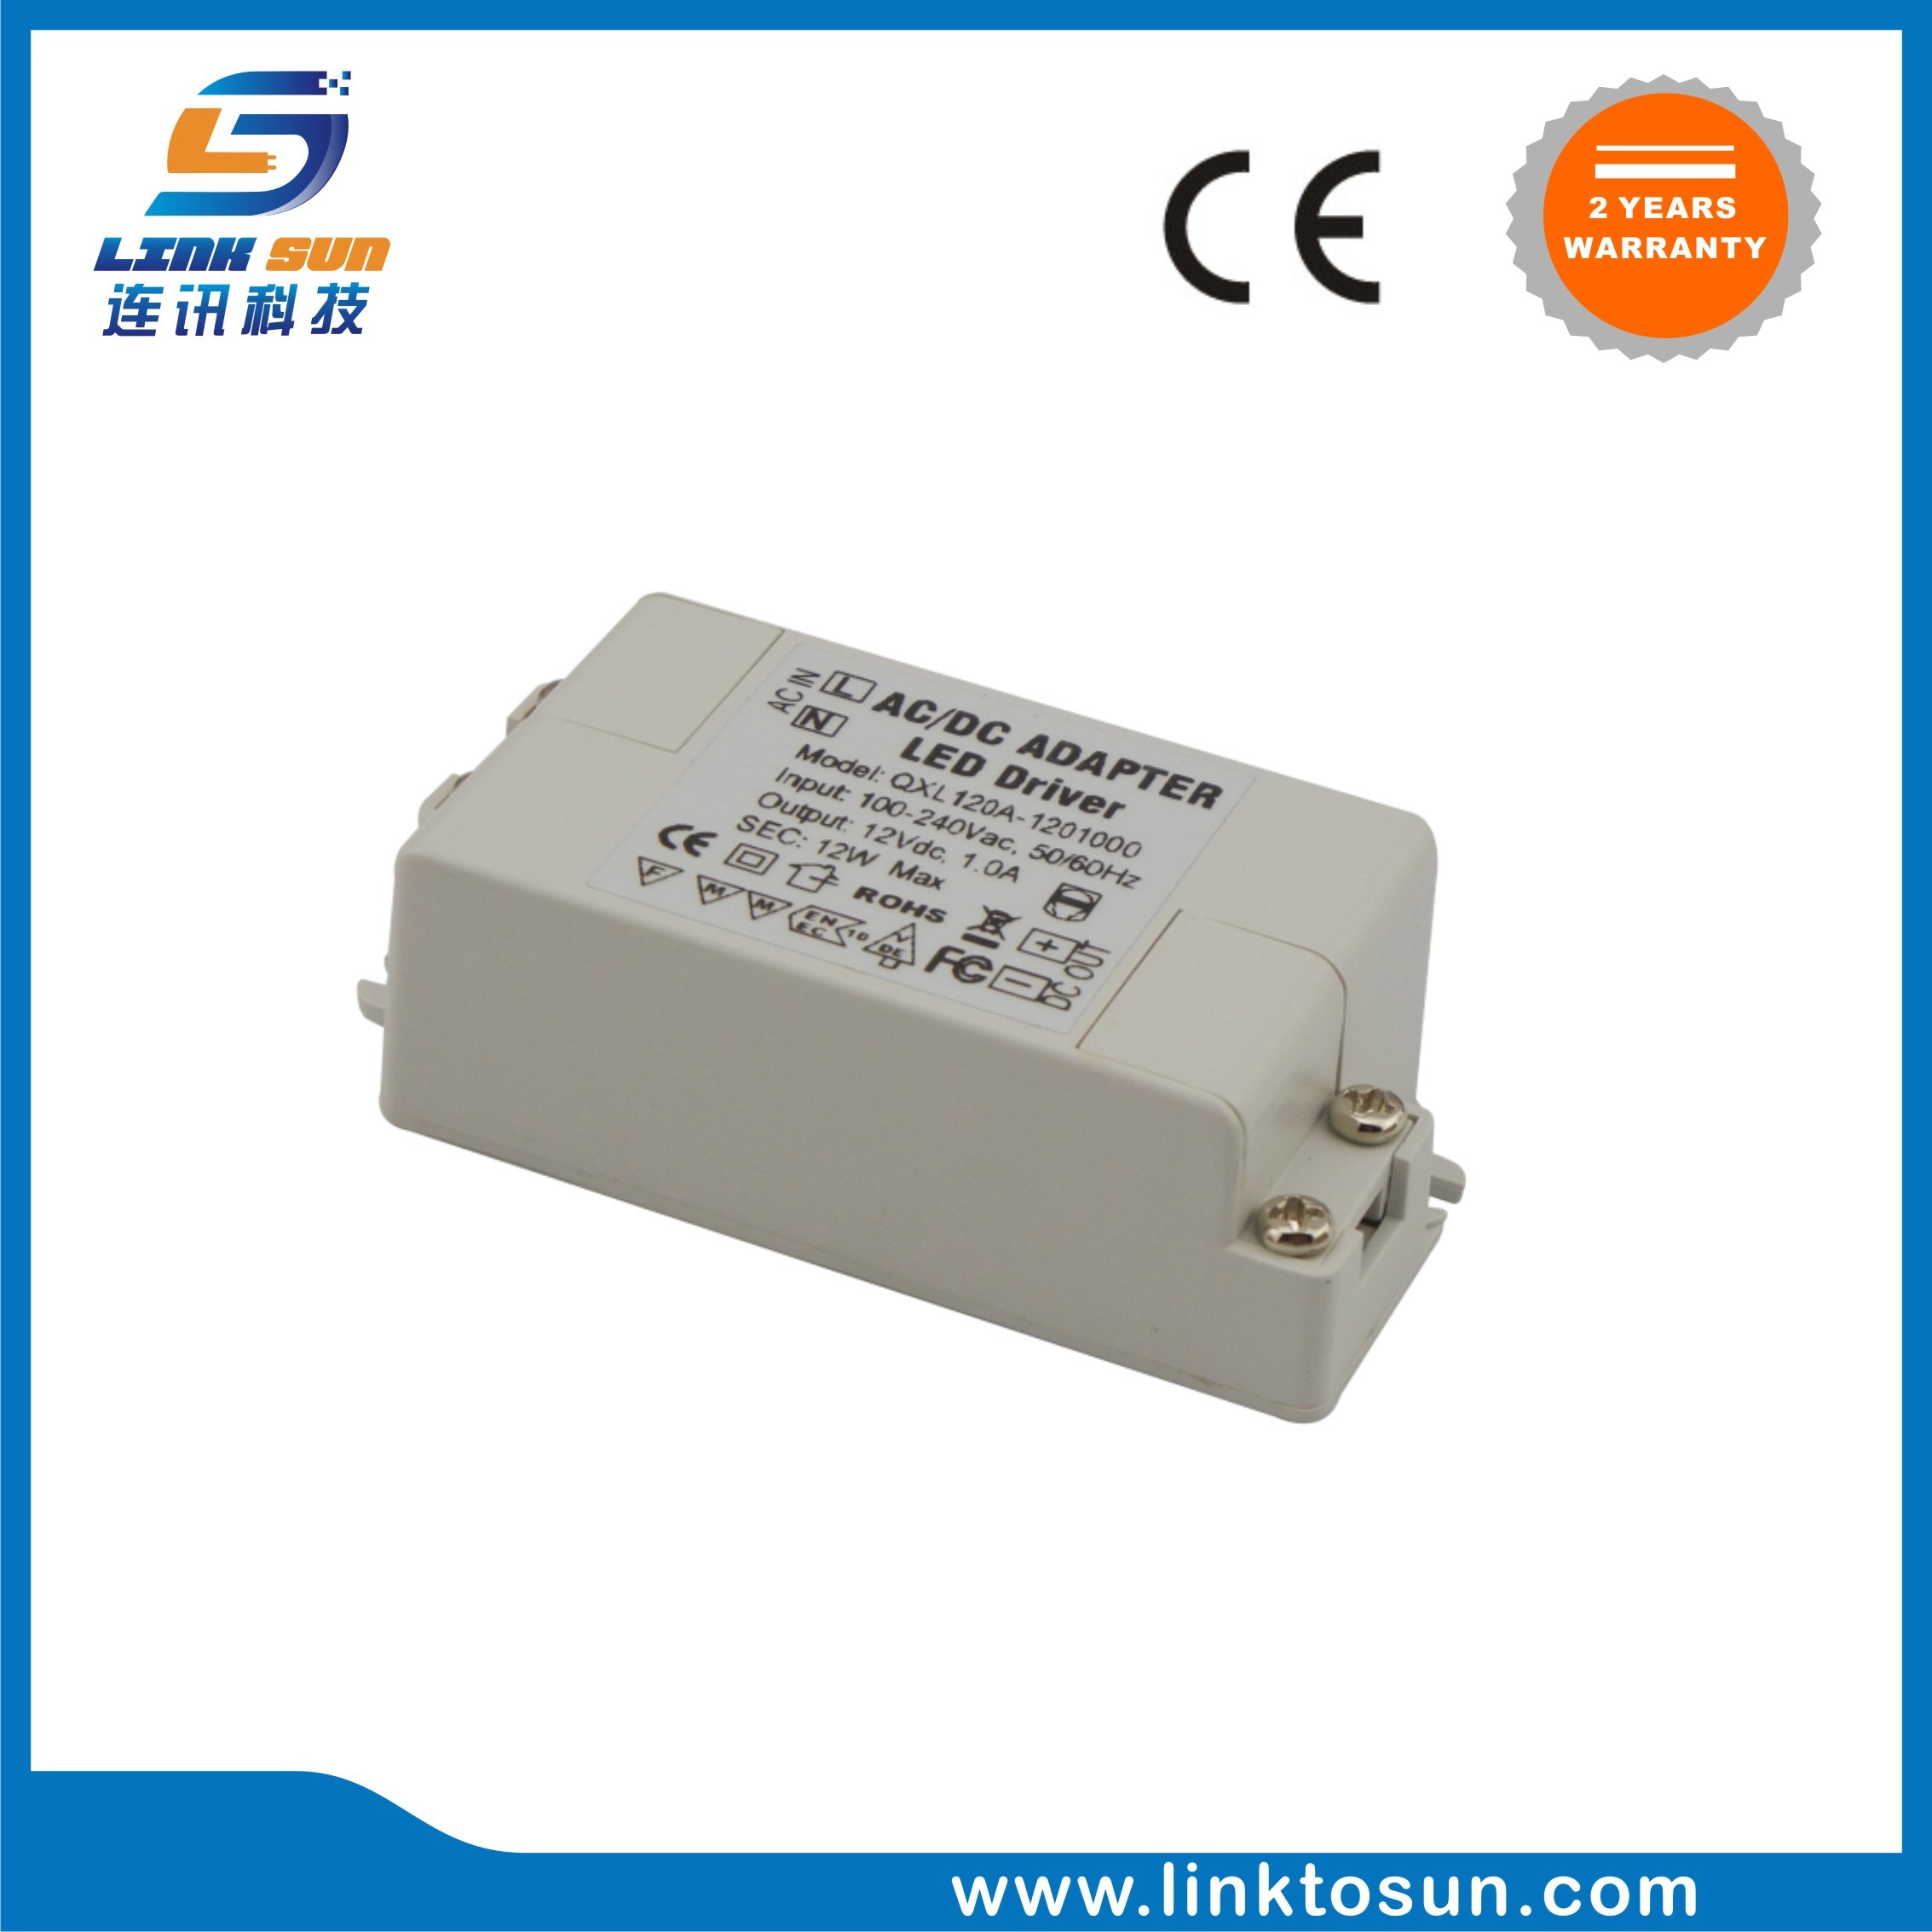 China 12w 12v 1a Constant Voltage Led Driver 2 Years Warranty Photos Smps 50 Watt Street Light Circuit Electronic